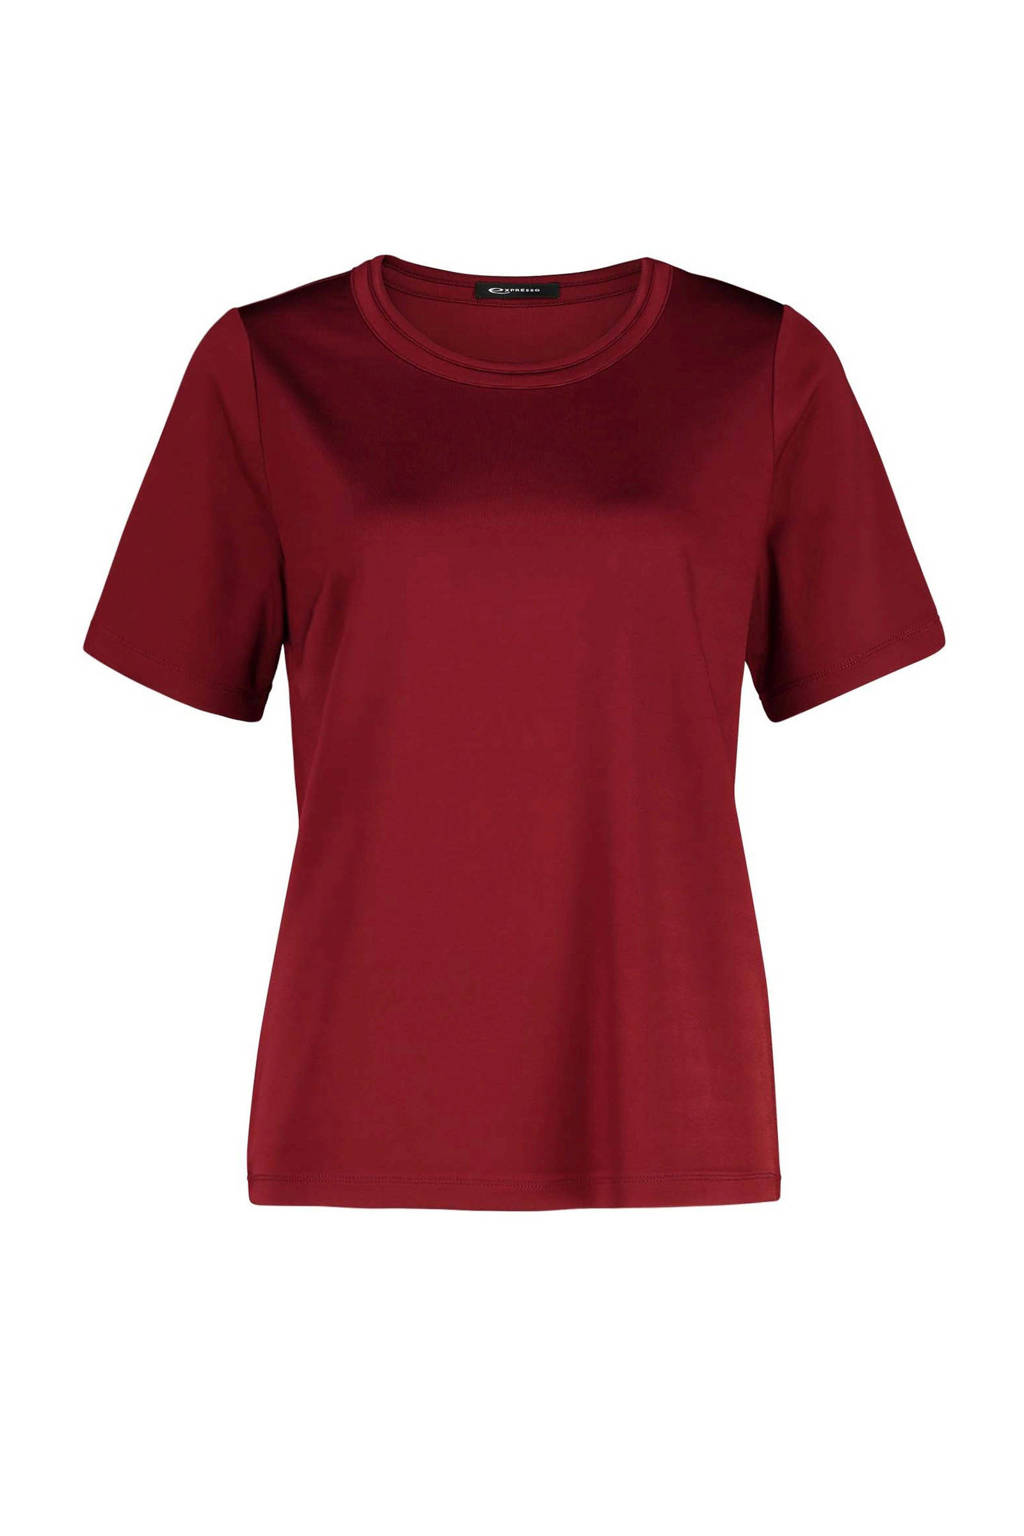 Expresso geweven top Kaline rood, Rood